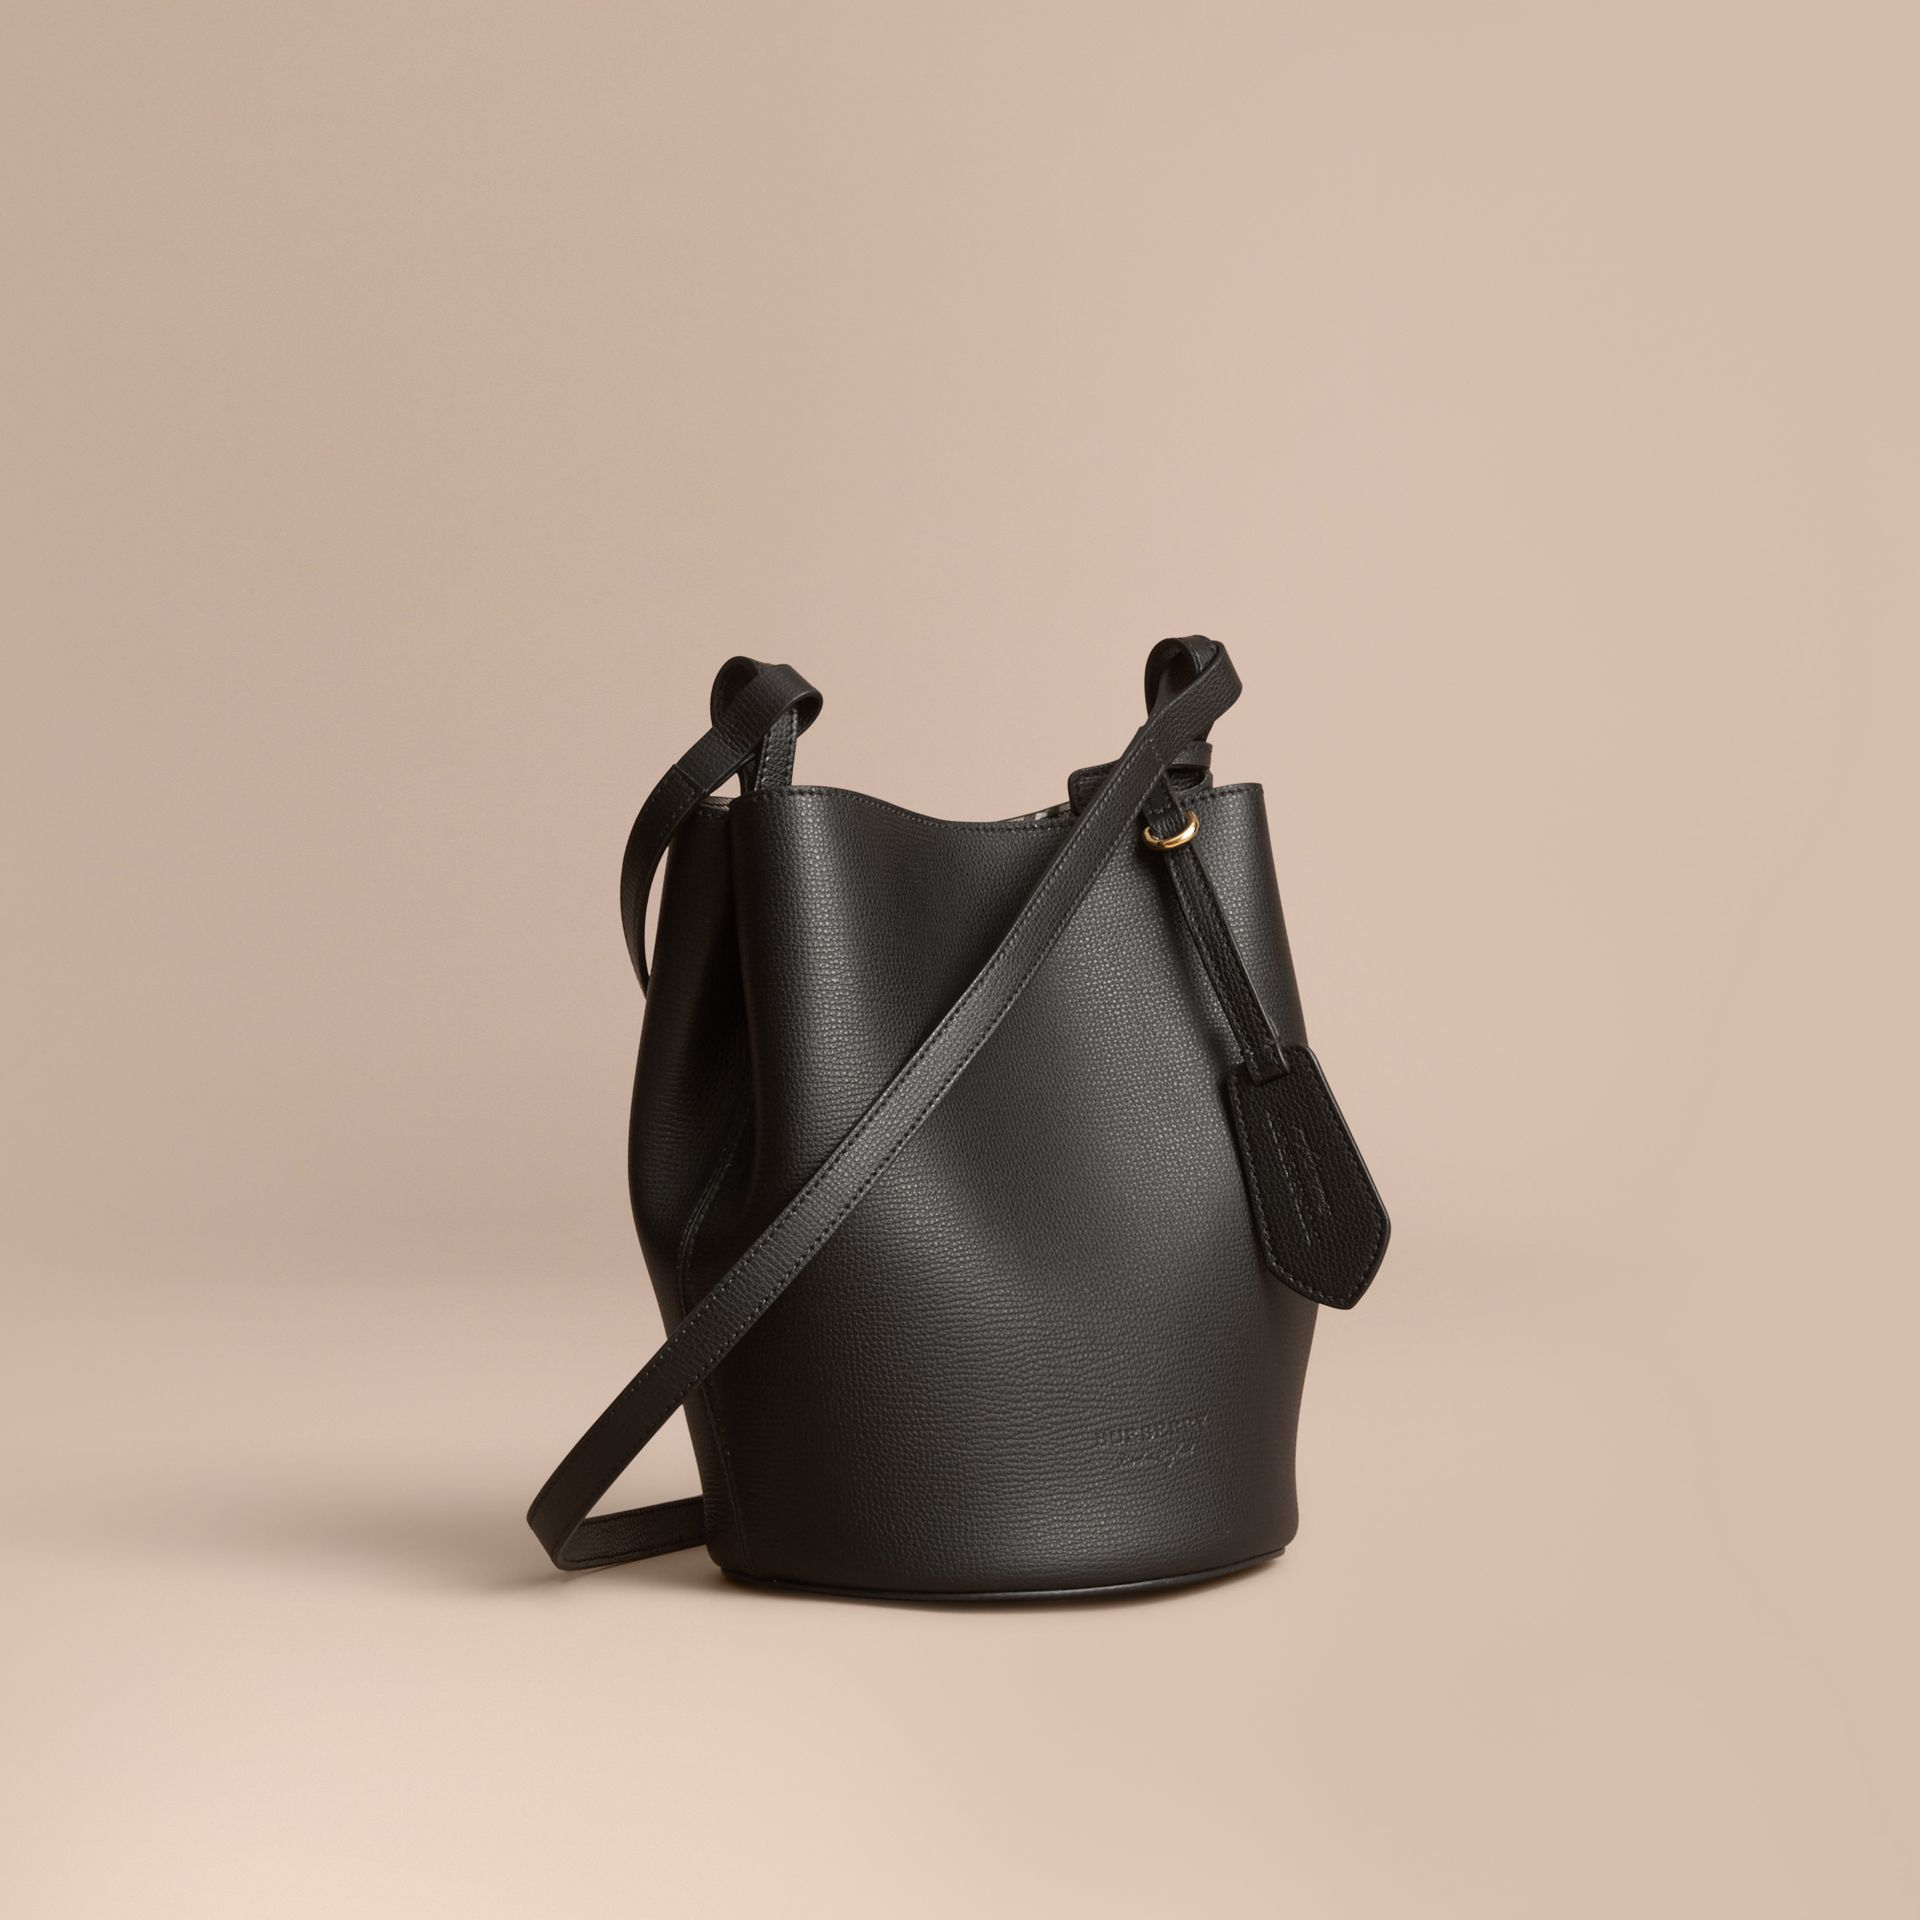 Leather and Haymarket Check Crossbody Bucket Bag in Black - Women | Burberry Singapore - gallery image 1